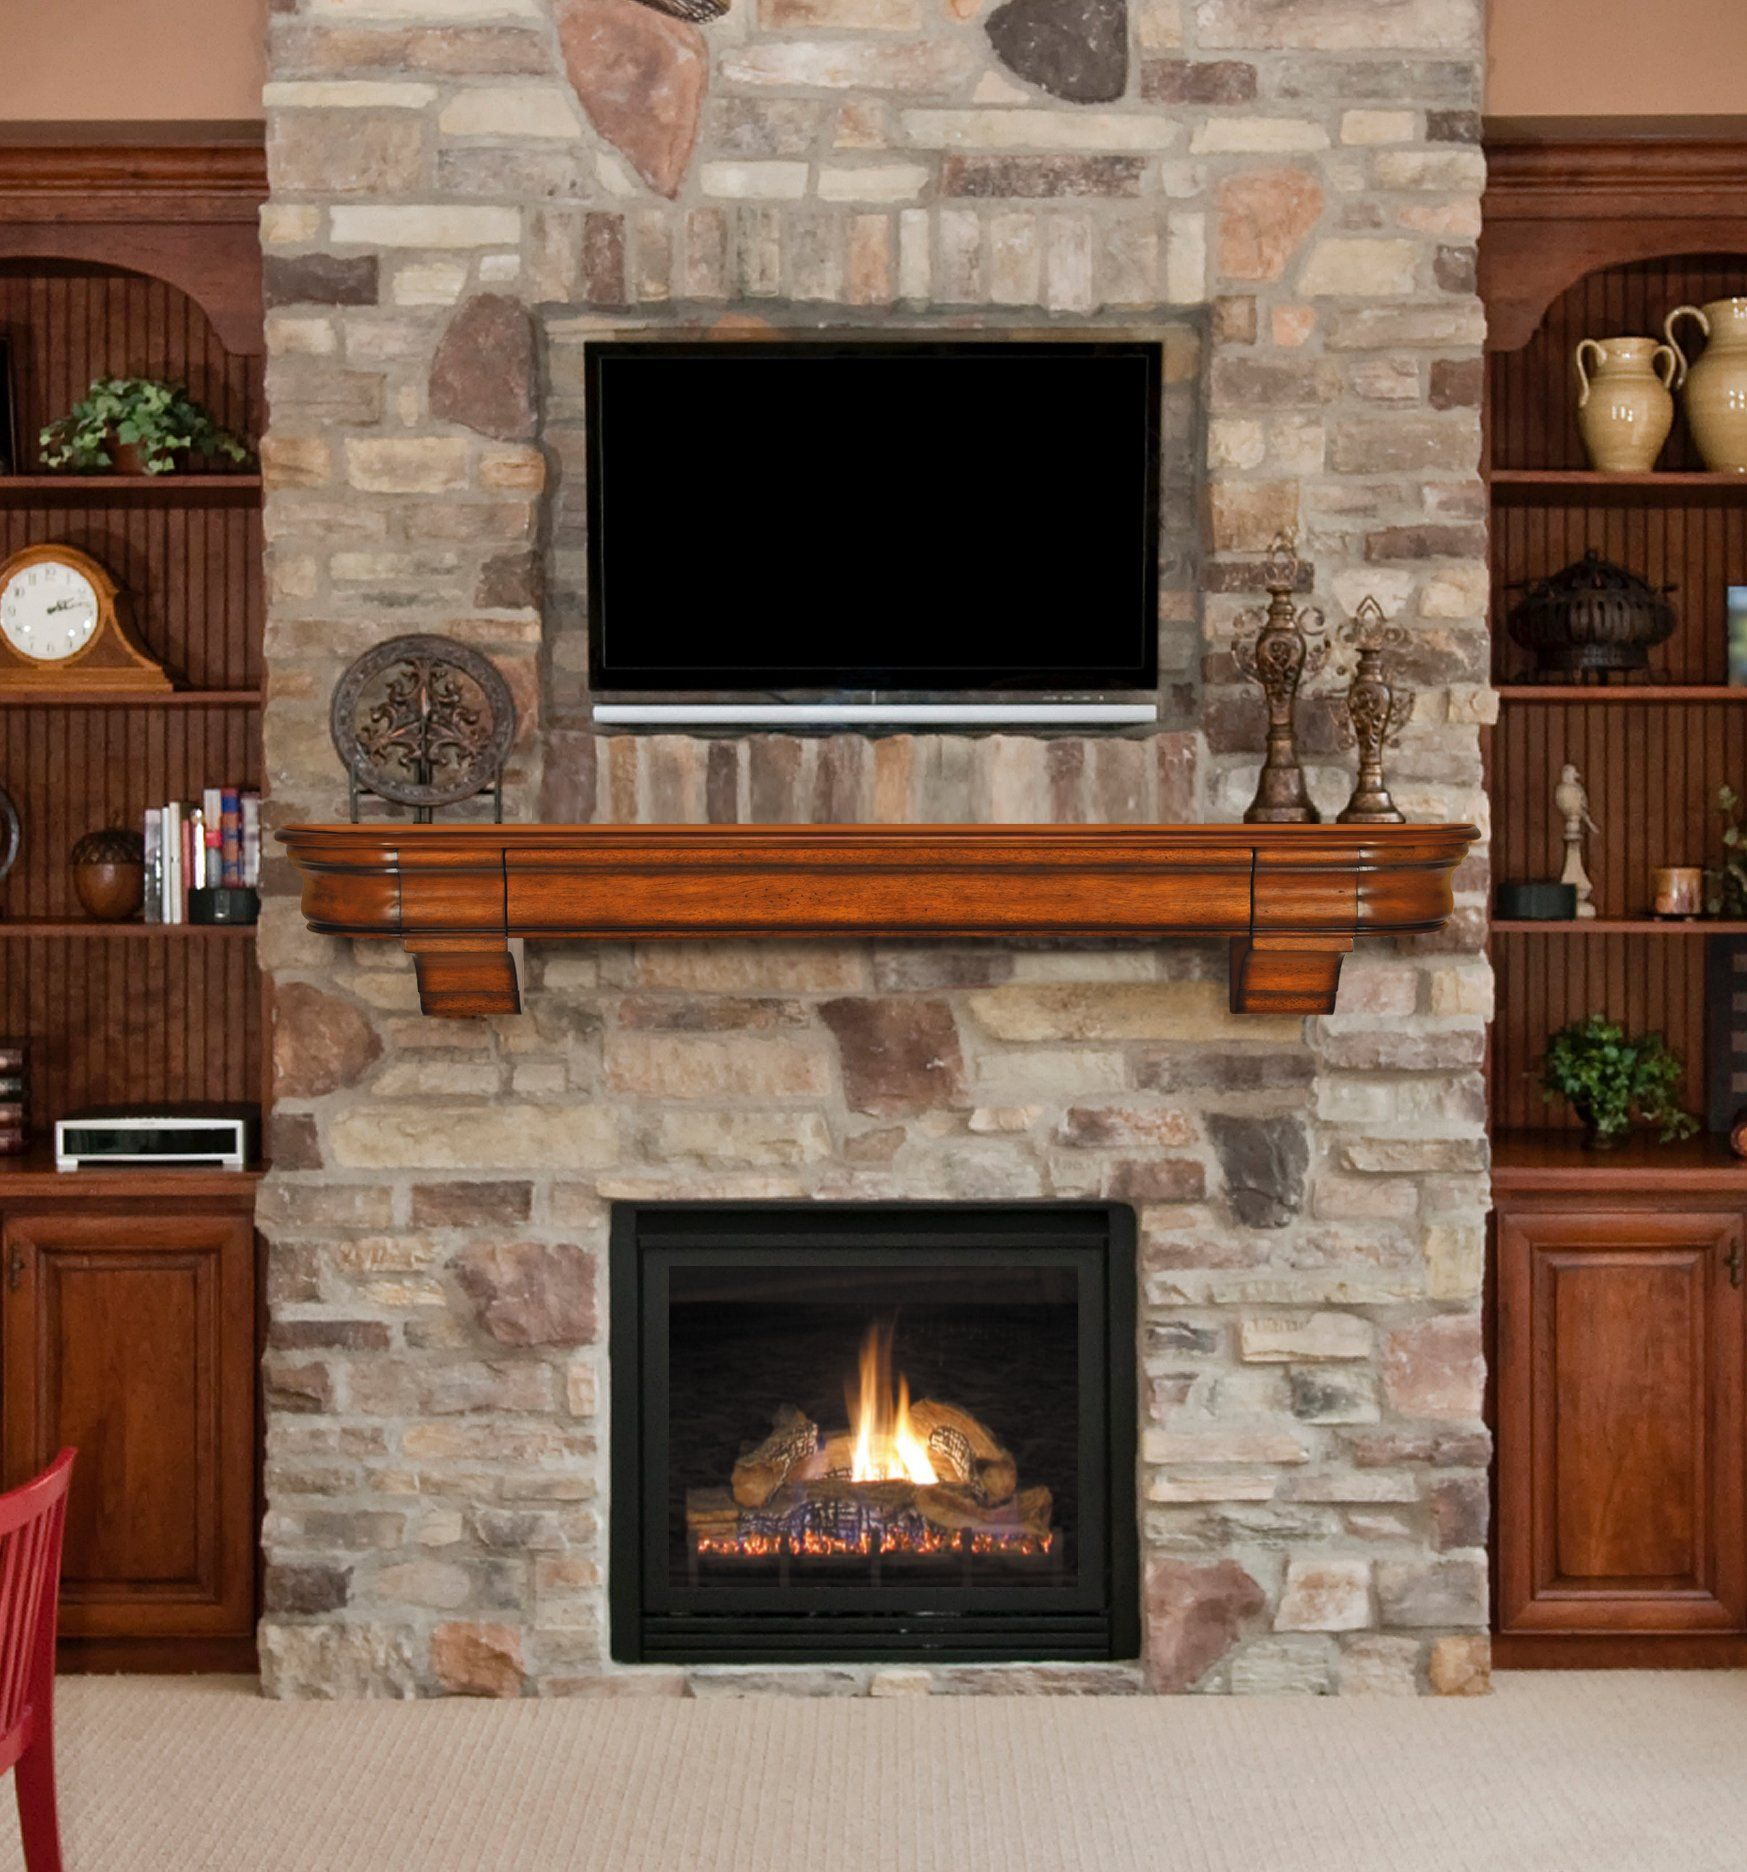 Stone Fireplace With Built In Cabinets: Living Room Designs With Fireplace And TV